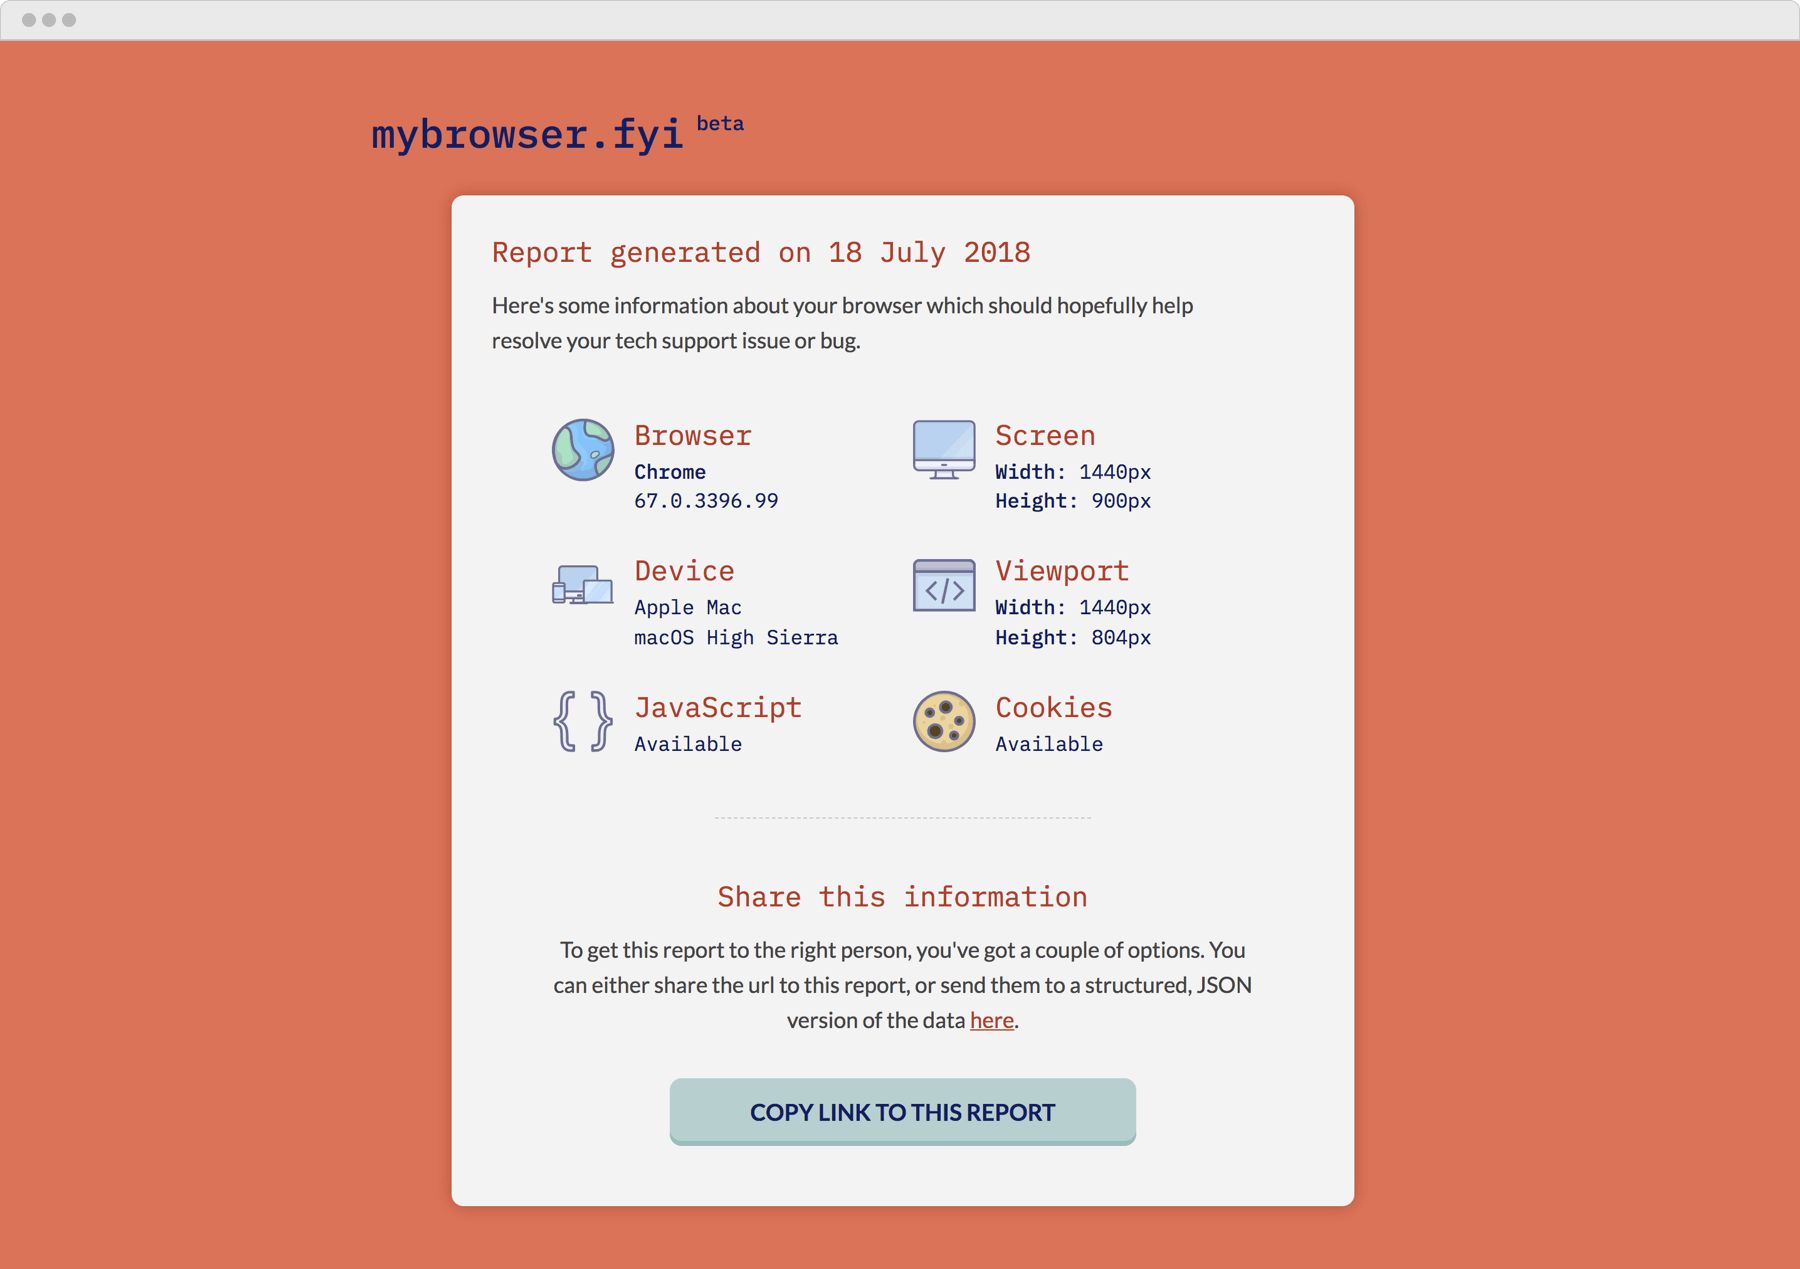 A screenshot of the My Browser app